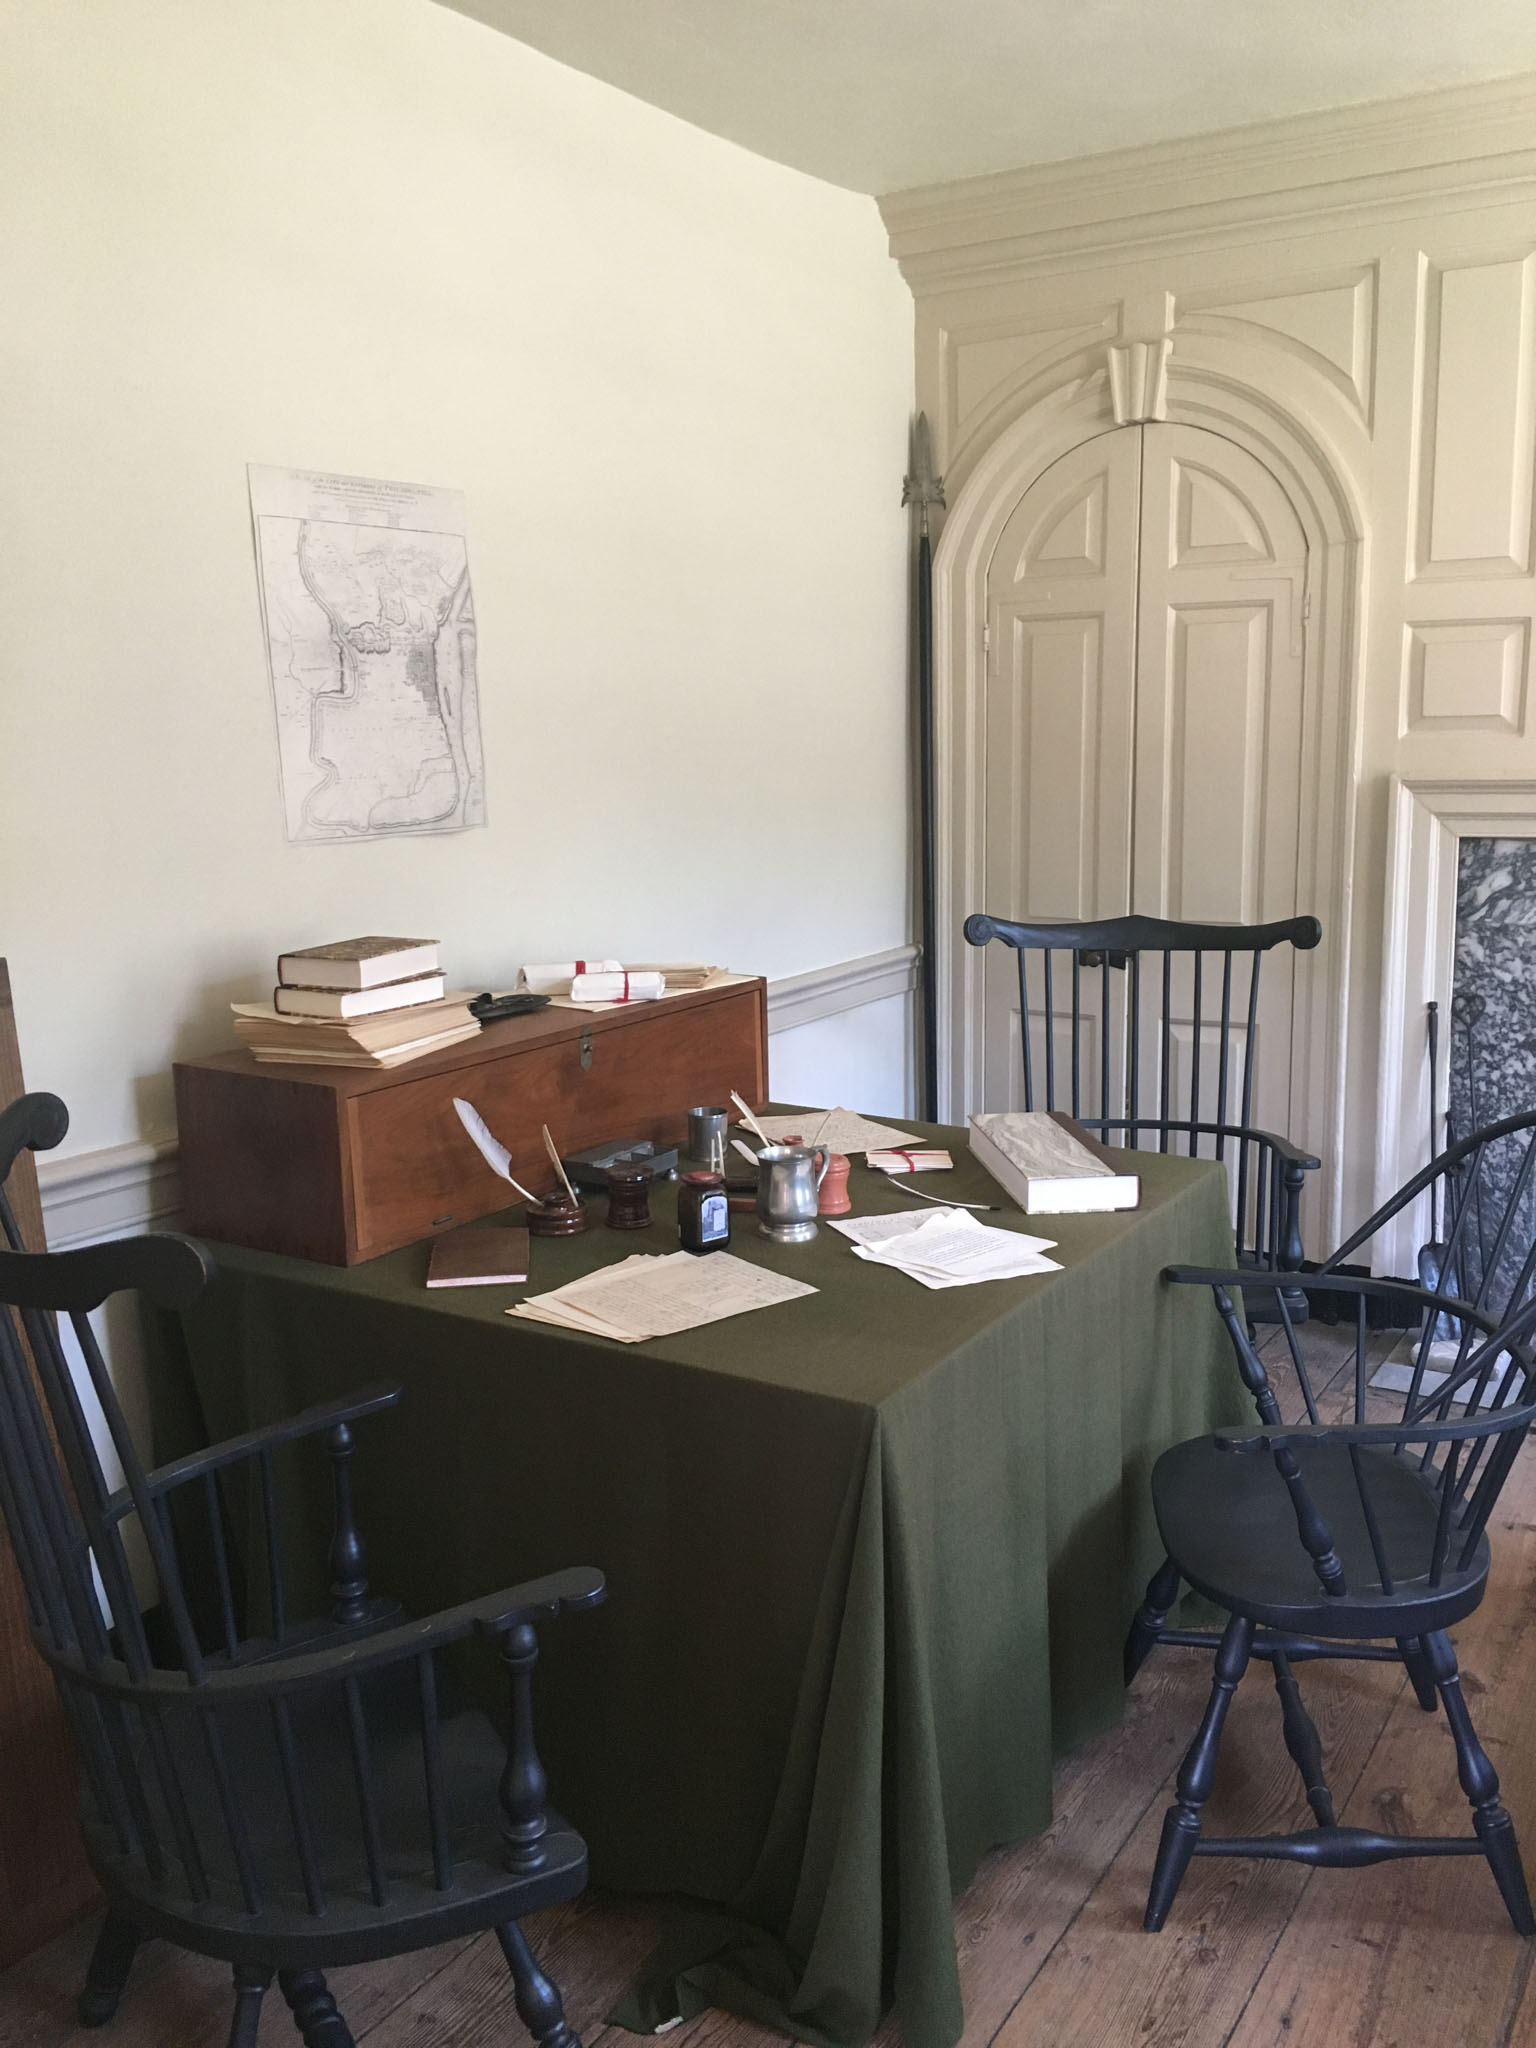 Alexander Hamilton's desk at Washington's Headquarters.